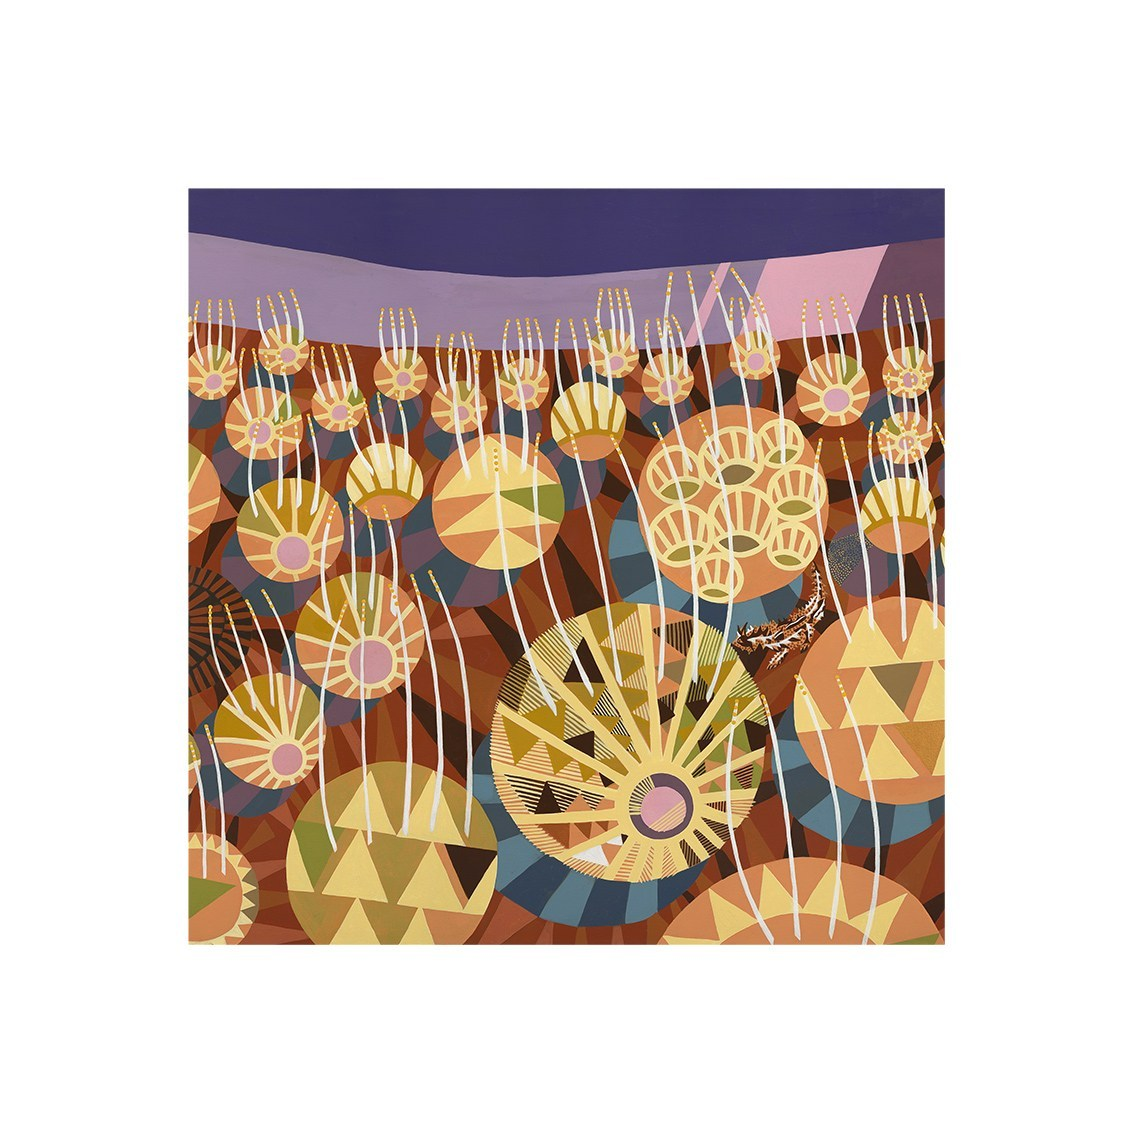 Helen Ansell -  'Spinifex at Sunset'  Giclee Print (han029)